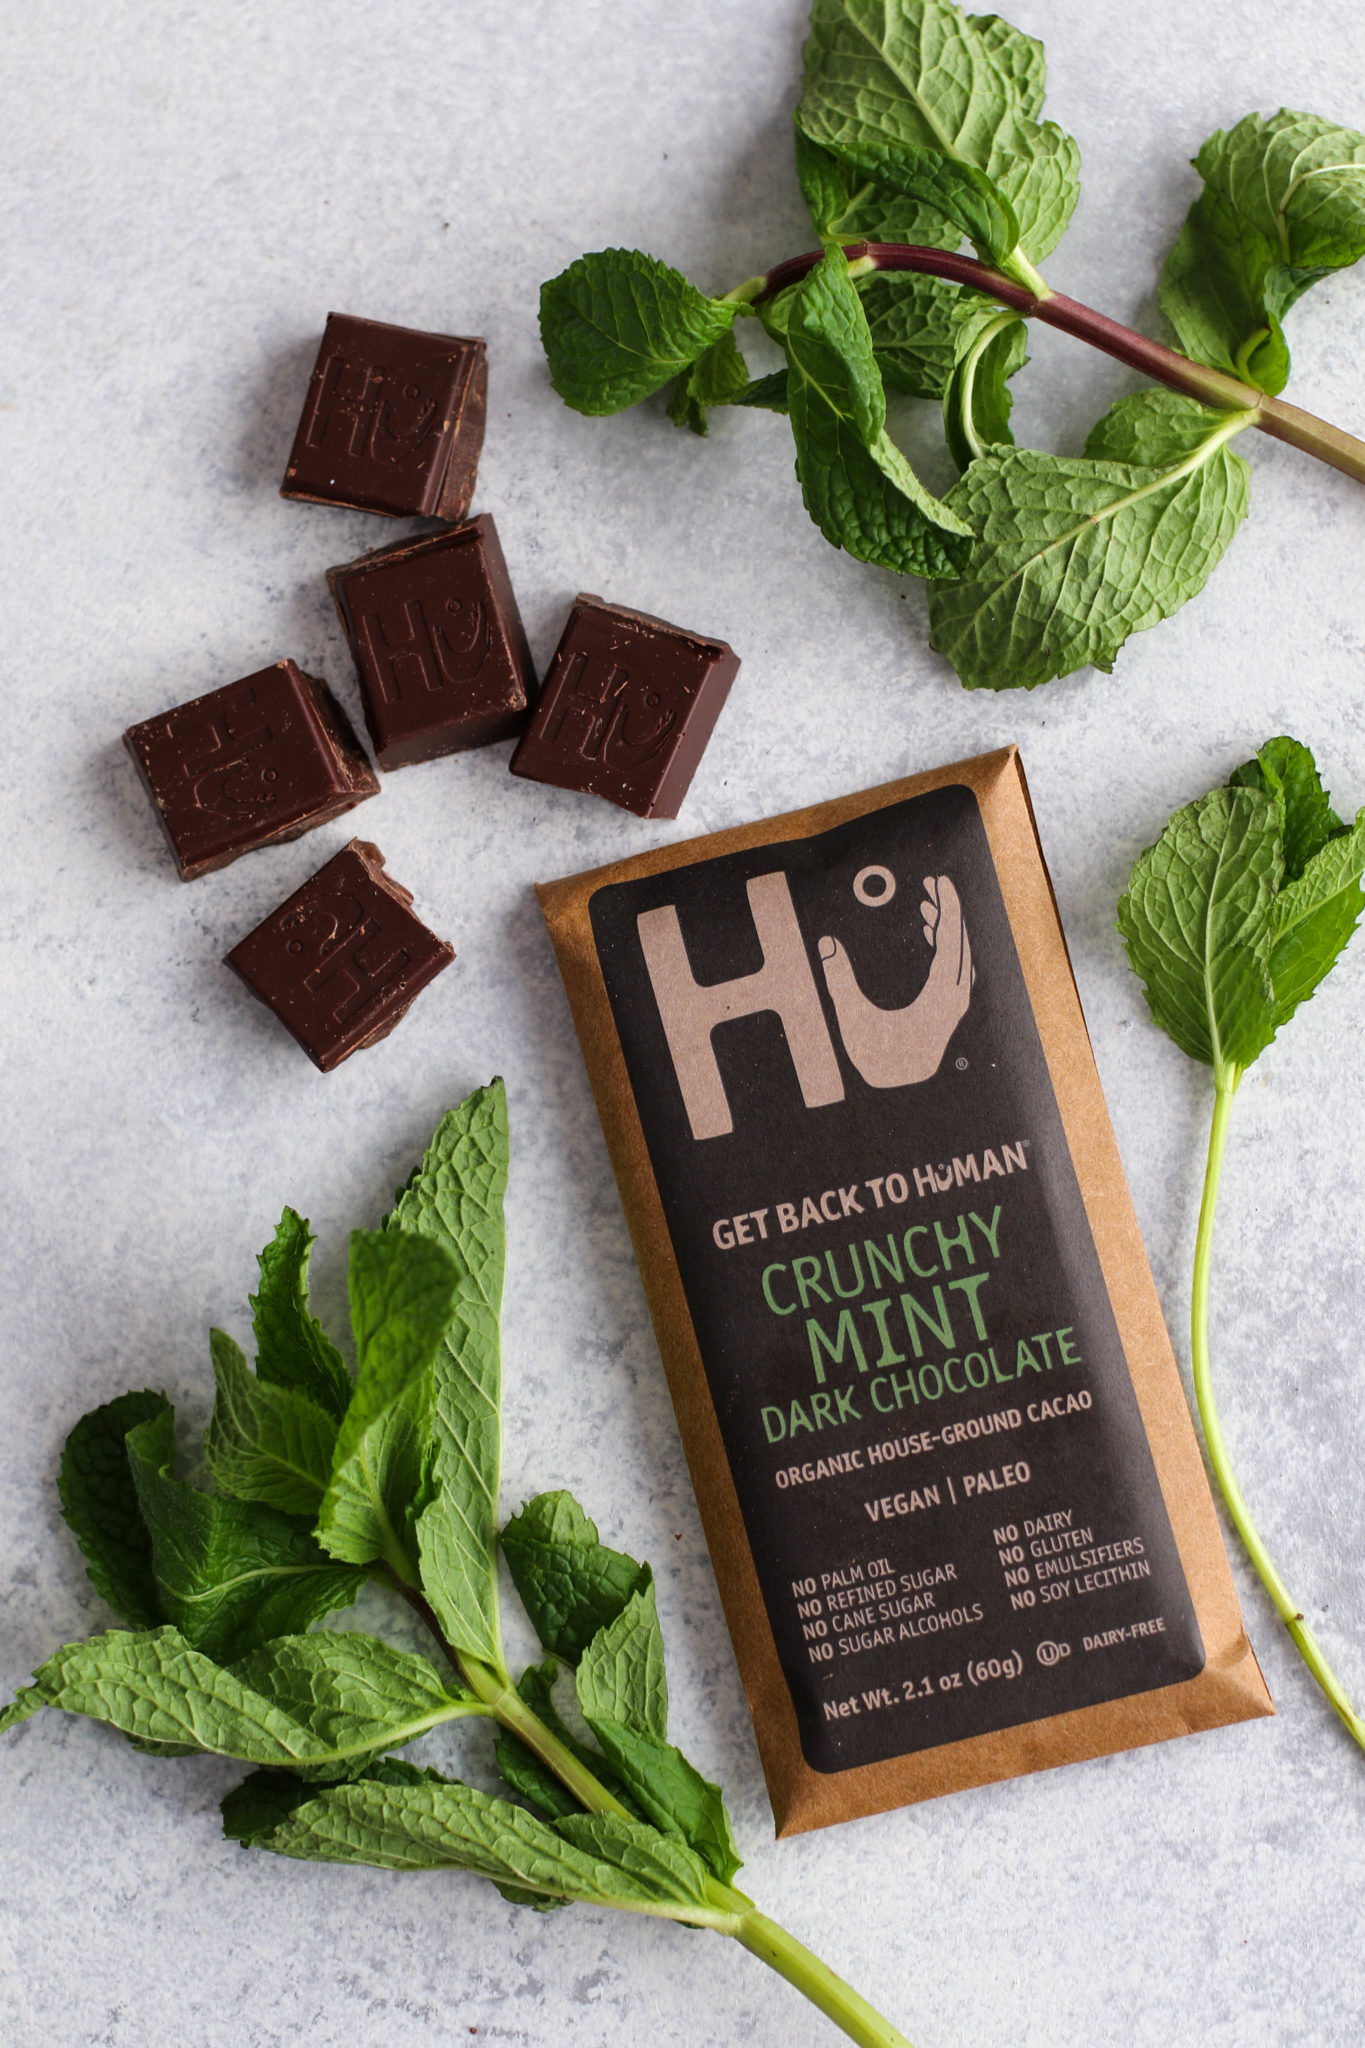 Hu Kitchen Crunchy Mint Dark Chocolate